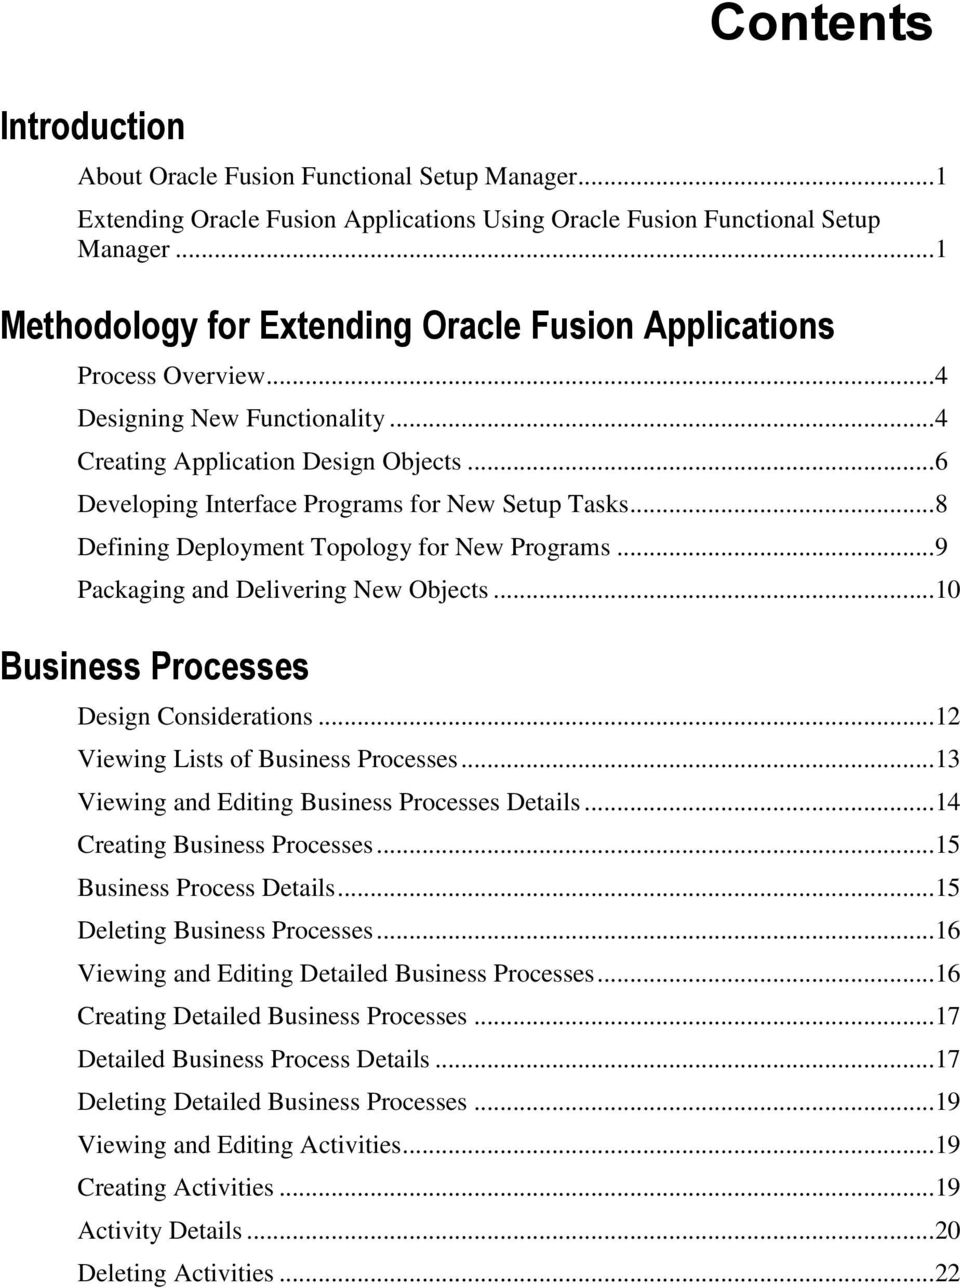 ..8 Defining Deployment Topology for New Programs...9 Packaging and Delivering New Objects...10 Business Processes Design Considerations...12 Viewing Lists of Business Processes.